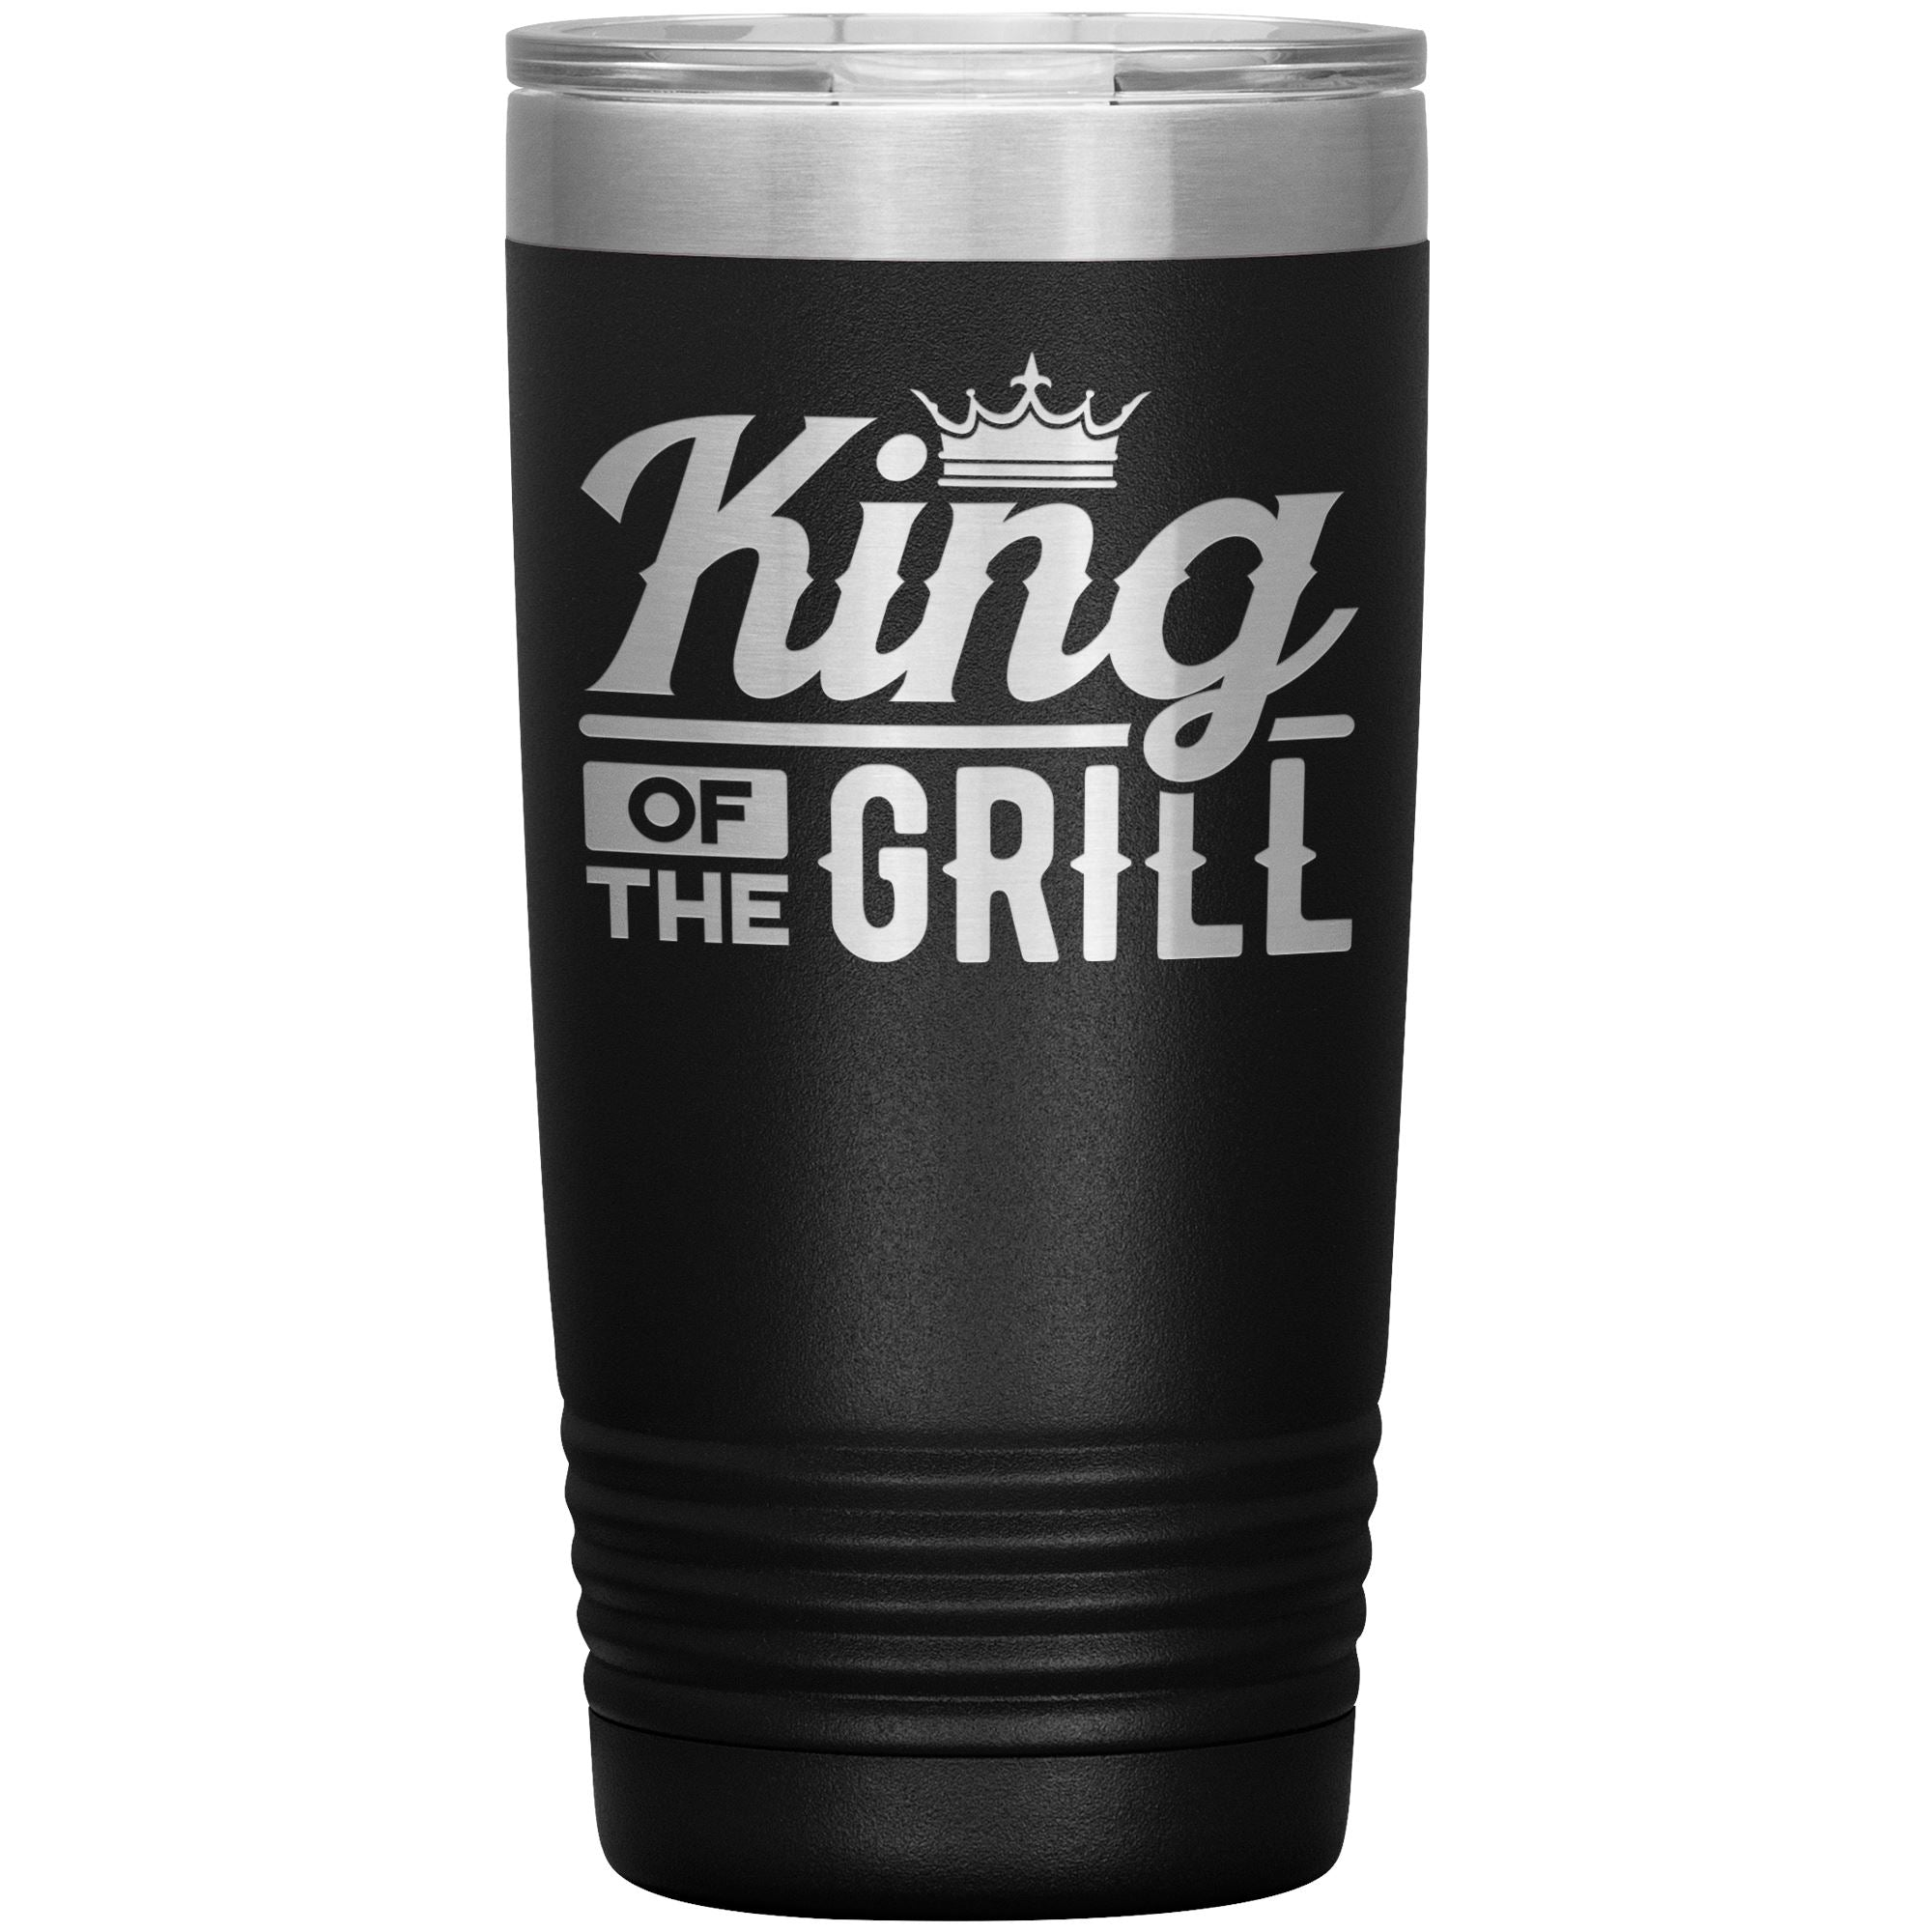 King of the Grill 20oz Tumbler Tumblers teelaunch Black